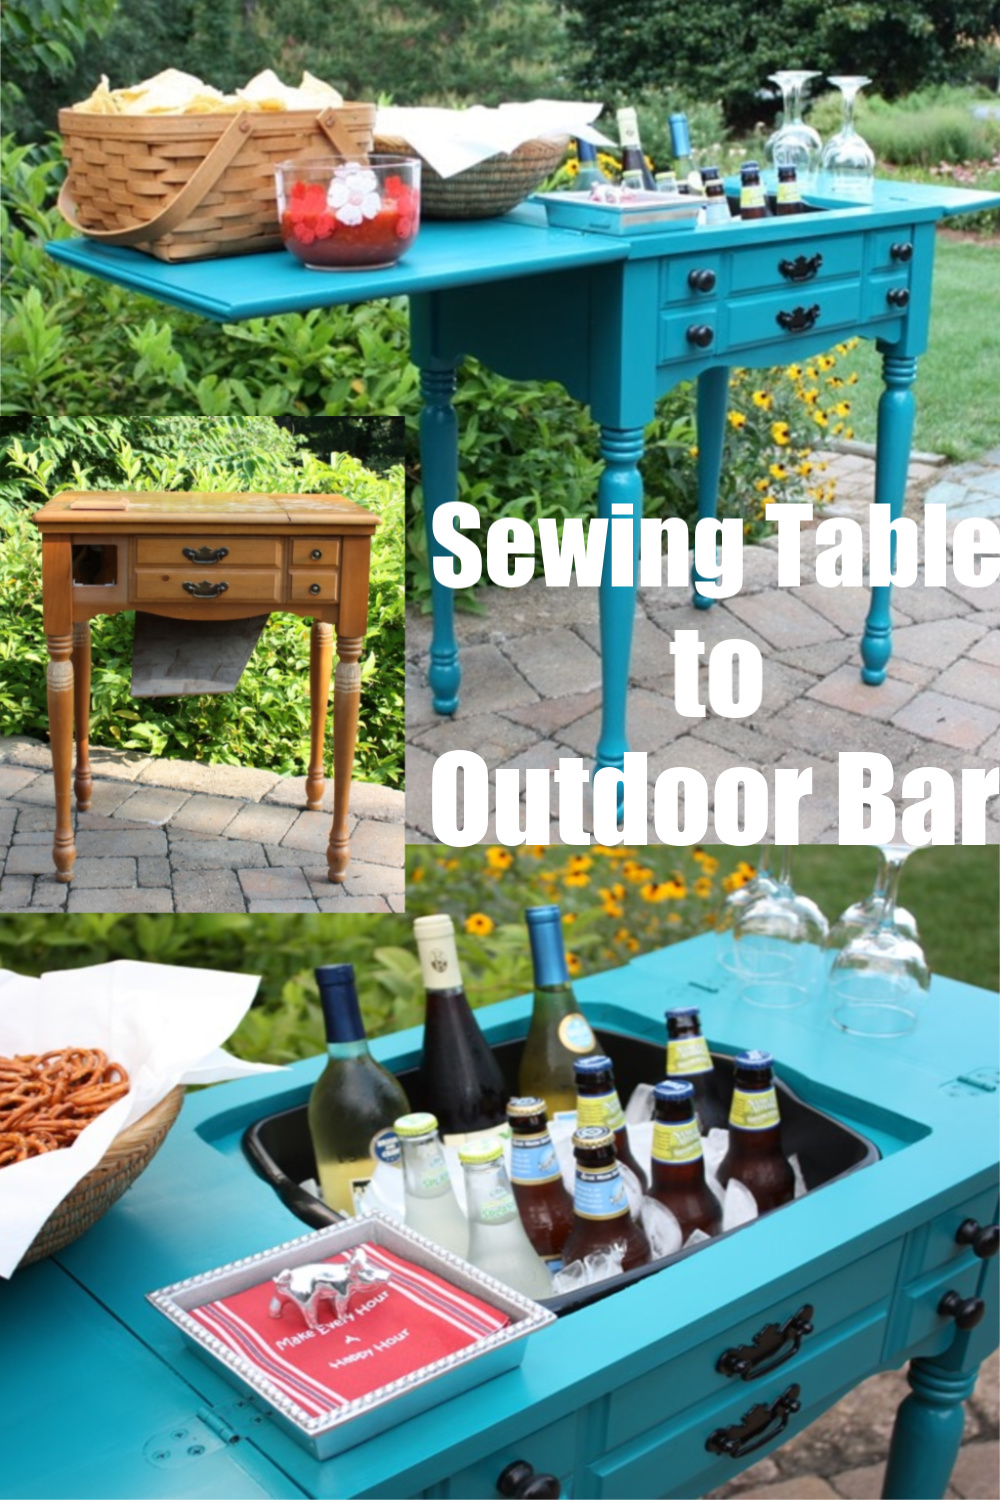 Sewing Table to Outdoor Bar - Learn how to upcycle a sewing table into an outdoor bar perfect for entertaining.  The table leaves hold snacks, napkins, and glasses while the former sewing machine area replaced with a dishpan holds ice and drinks.  #upcycle #sewingcabinetideas #sewingcabinet #repurposed via @spaula